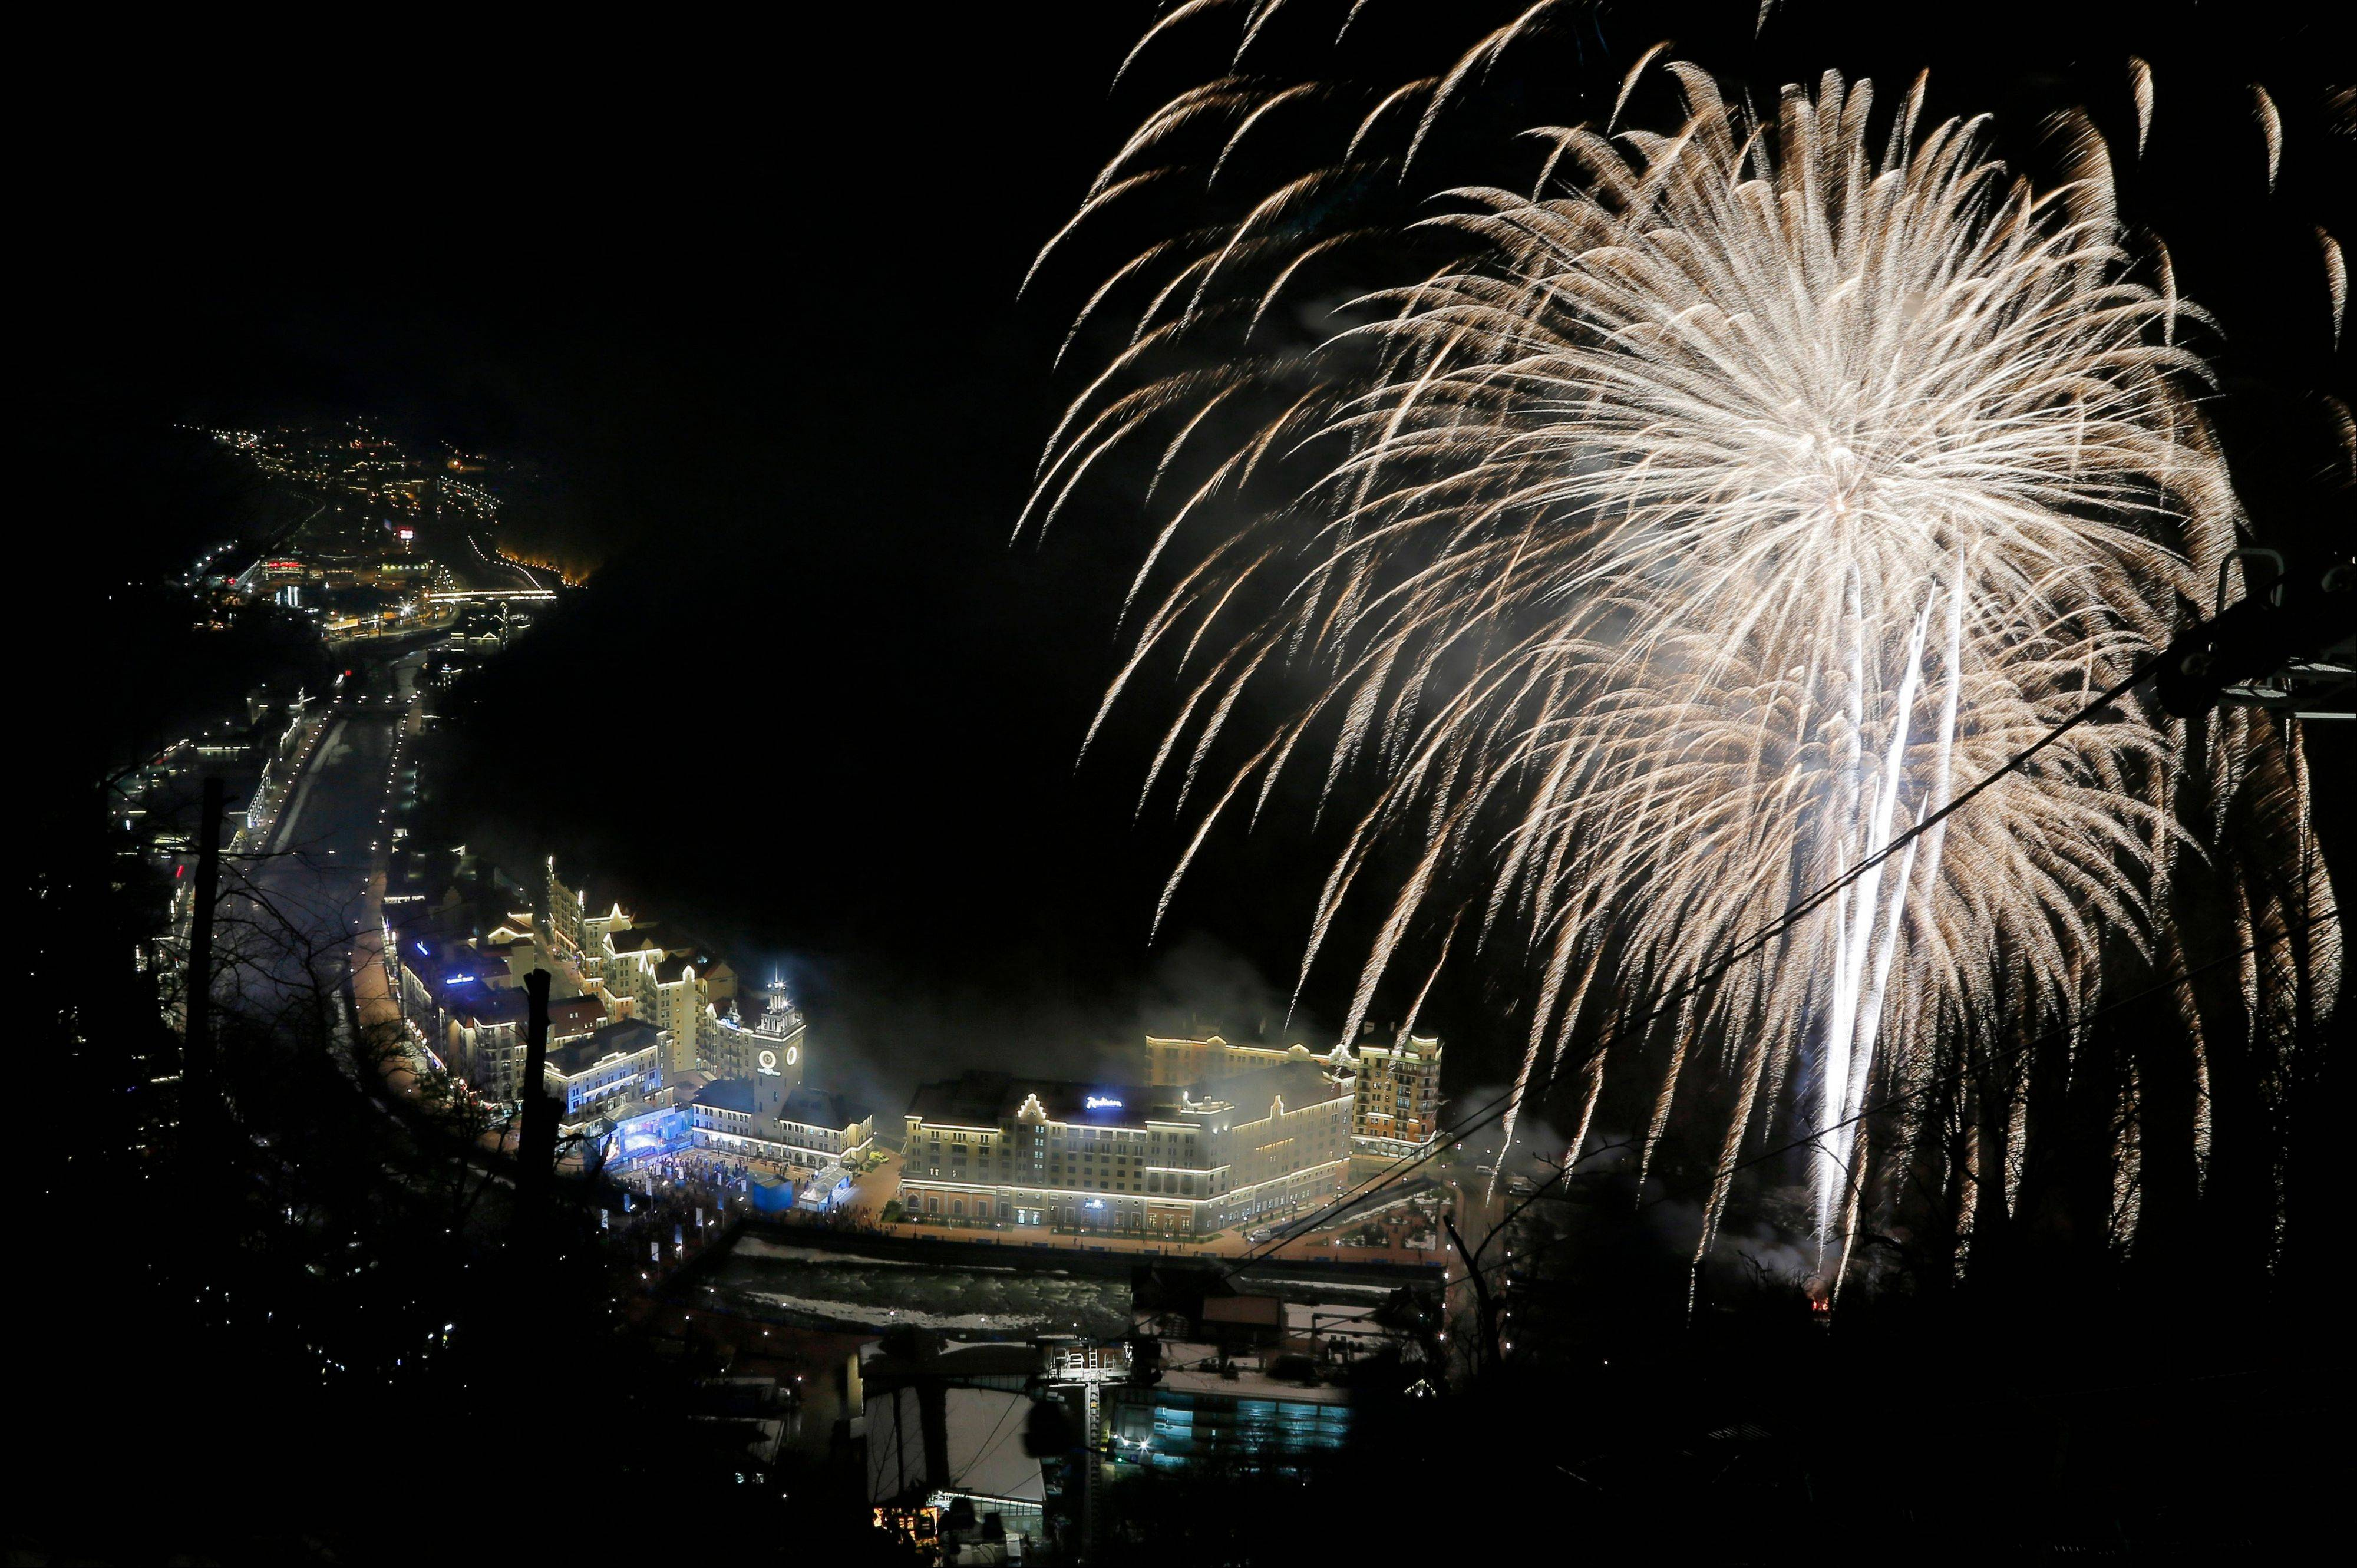 Fireworks explode over Roza Khutor, near Krasnaya Polyana, Russia, the mountain Olympic cluster, Friday, Feb. 7, 2014, during opening of the 2014 Winter Olympics.